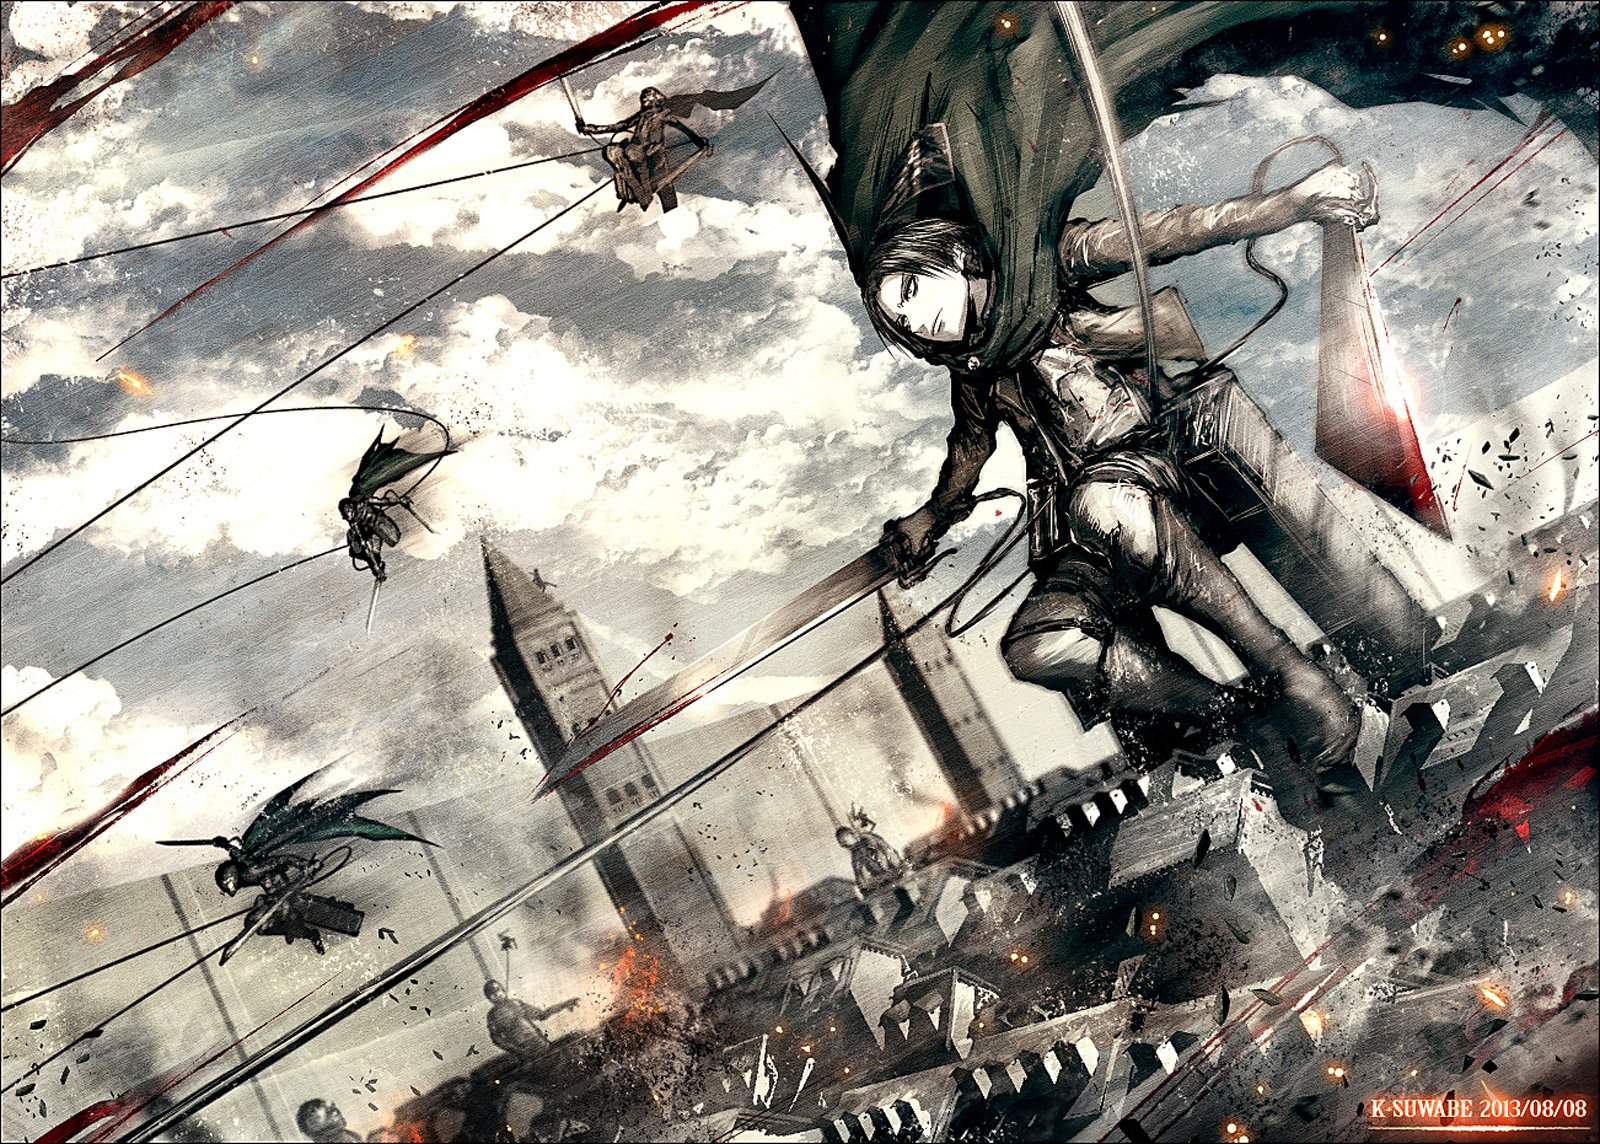 Titan Shingeki no Kyojin Anime HD Wallpaper Desktop PC Background 2122 1600x1144